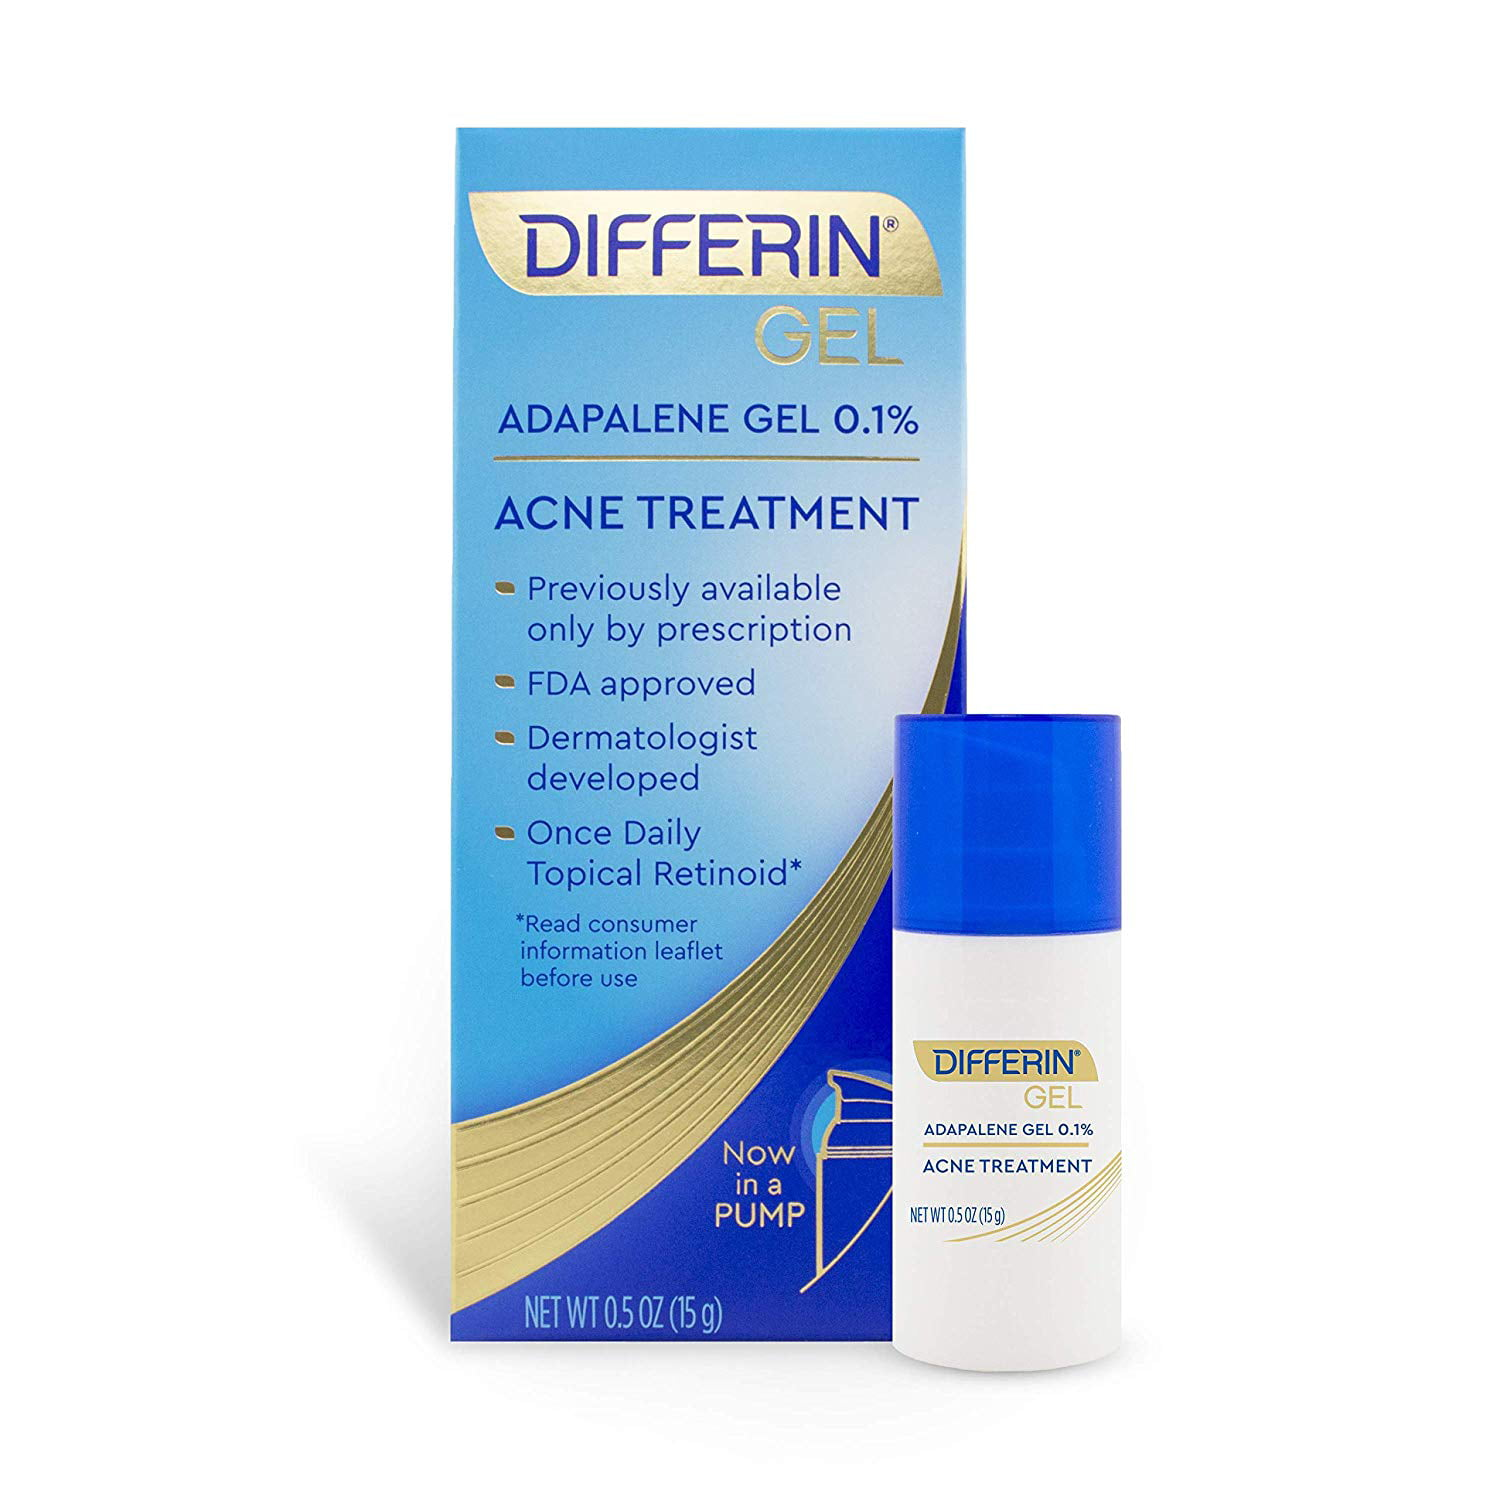 Differin Adapalene Gel 0 1 Acne Treatment 15g 30 Day Supply Pump Walmart Com Walmart Com